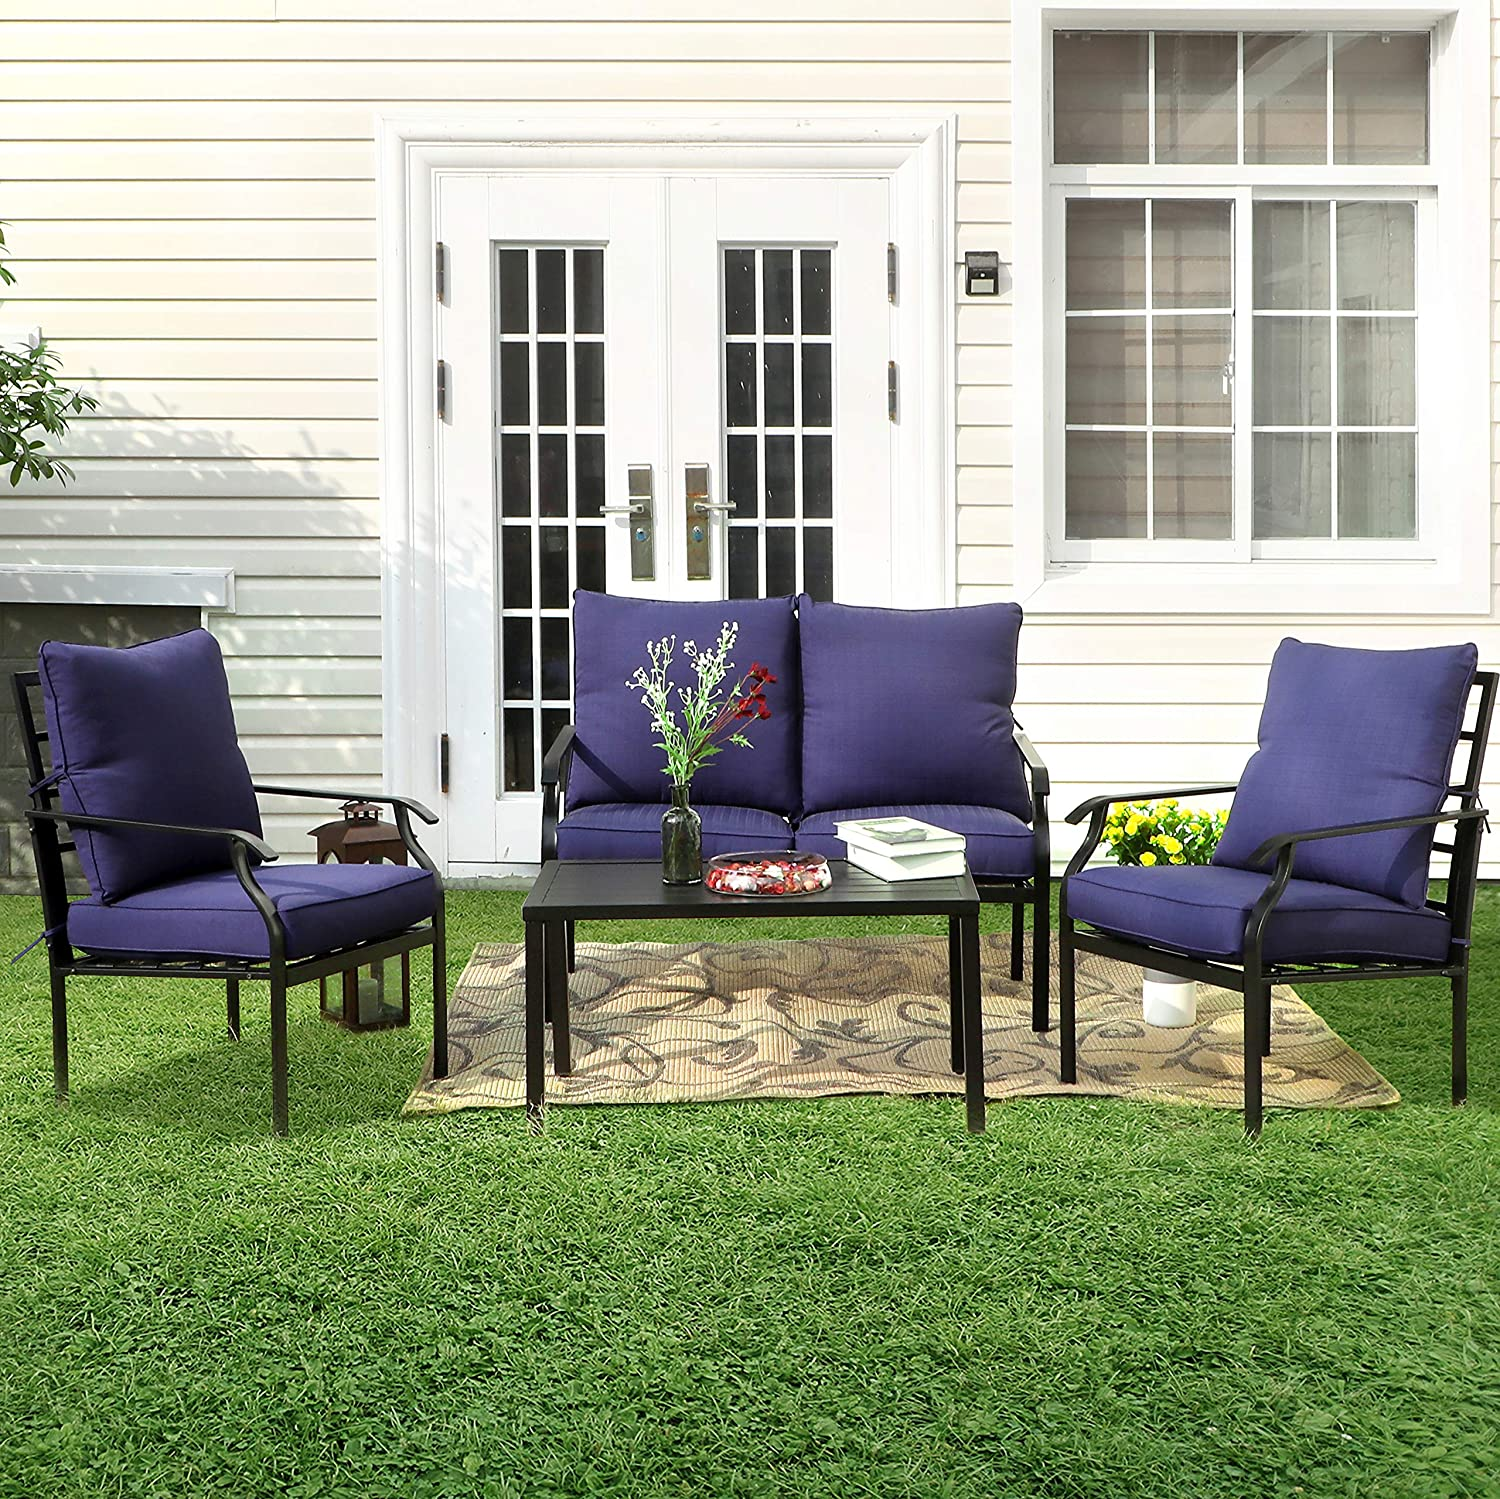 Phi Villa Metal 4 Piece Outdoor Patio Furniture Padded Conversation Set With 1 Loveseat 2 Chairs 1 Coffee Table 4 Free Pillows Navy Blue Garden Outdoor